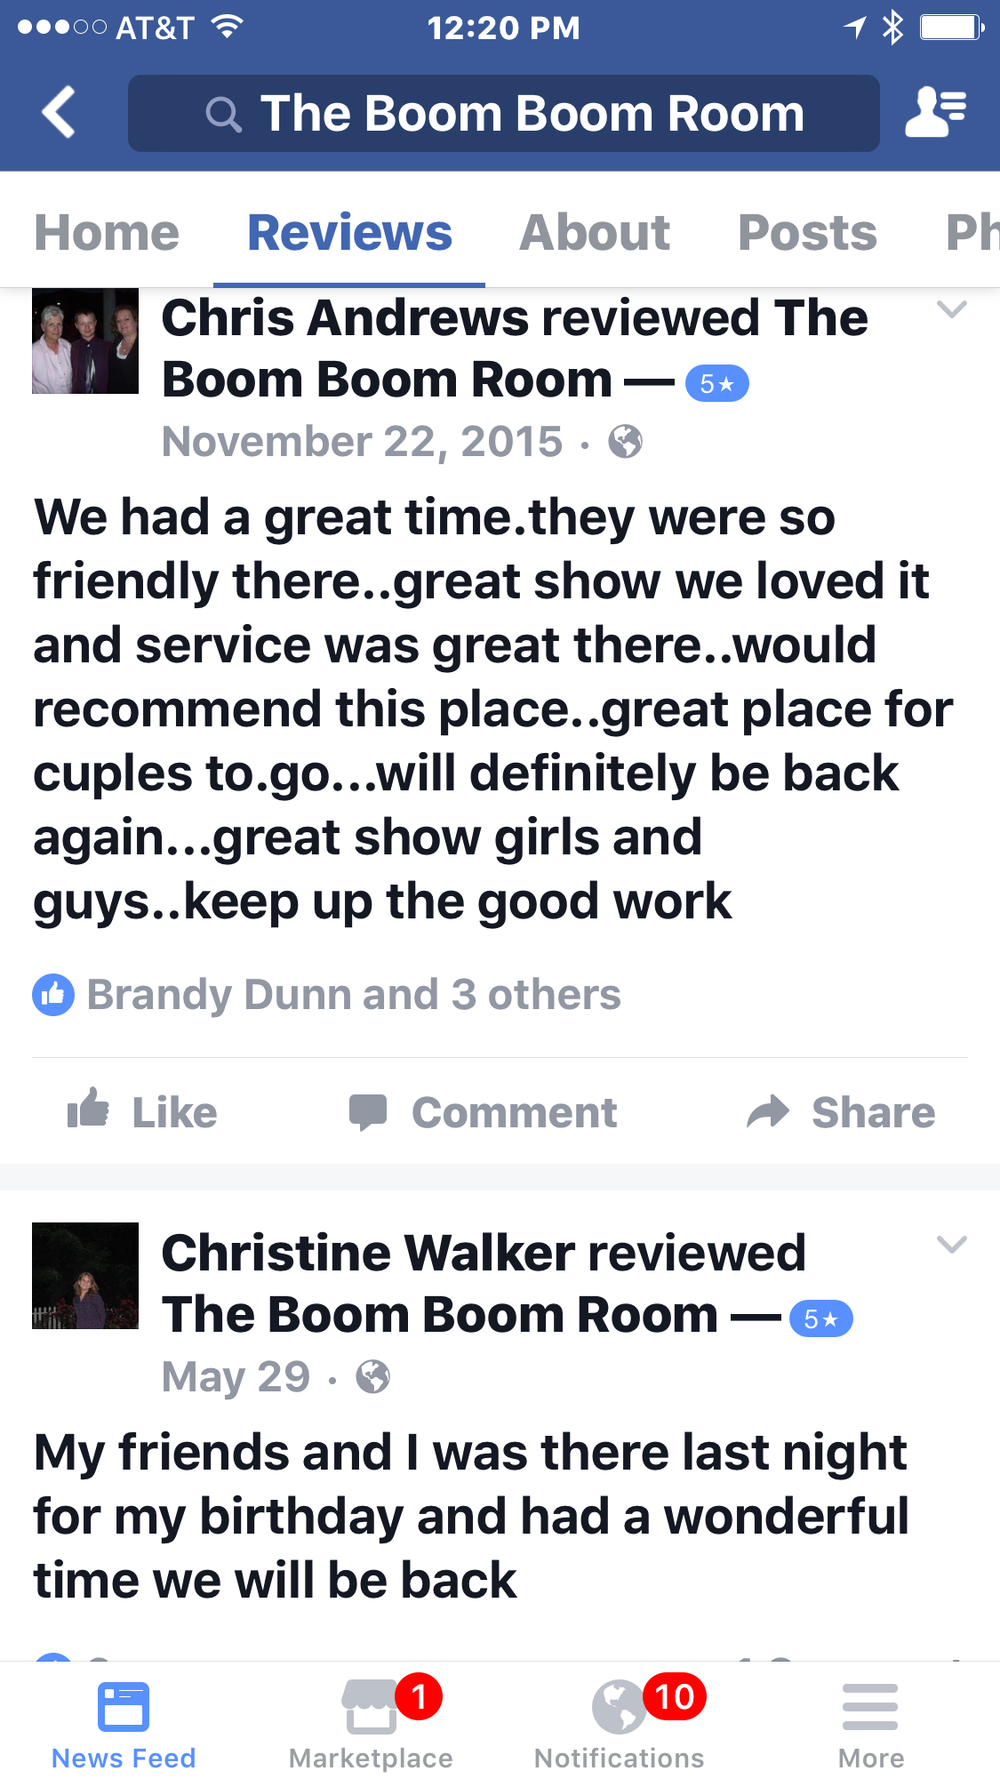 The Boom Boom Room St. Louis Burlesque Positive Reviews -141.png